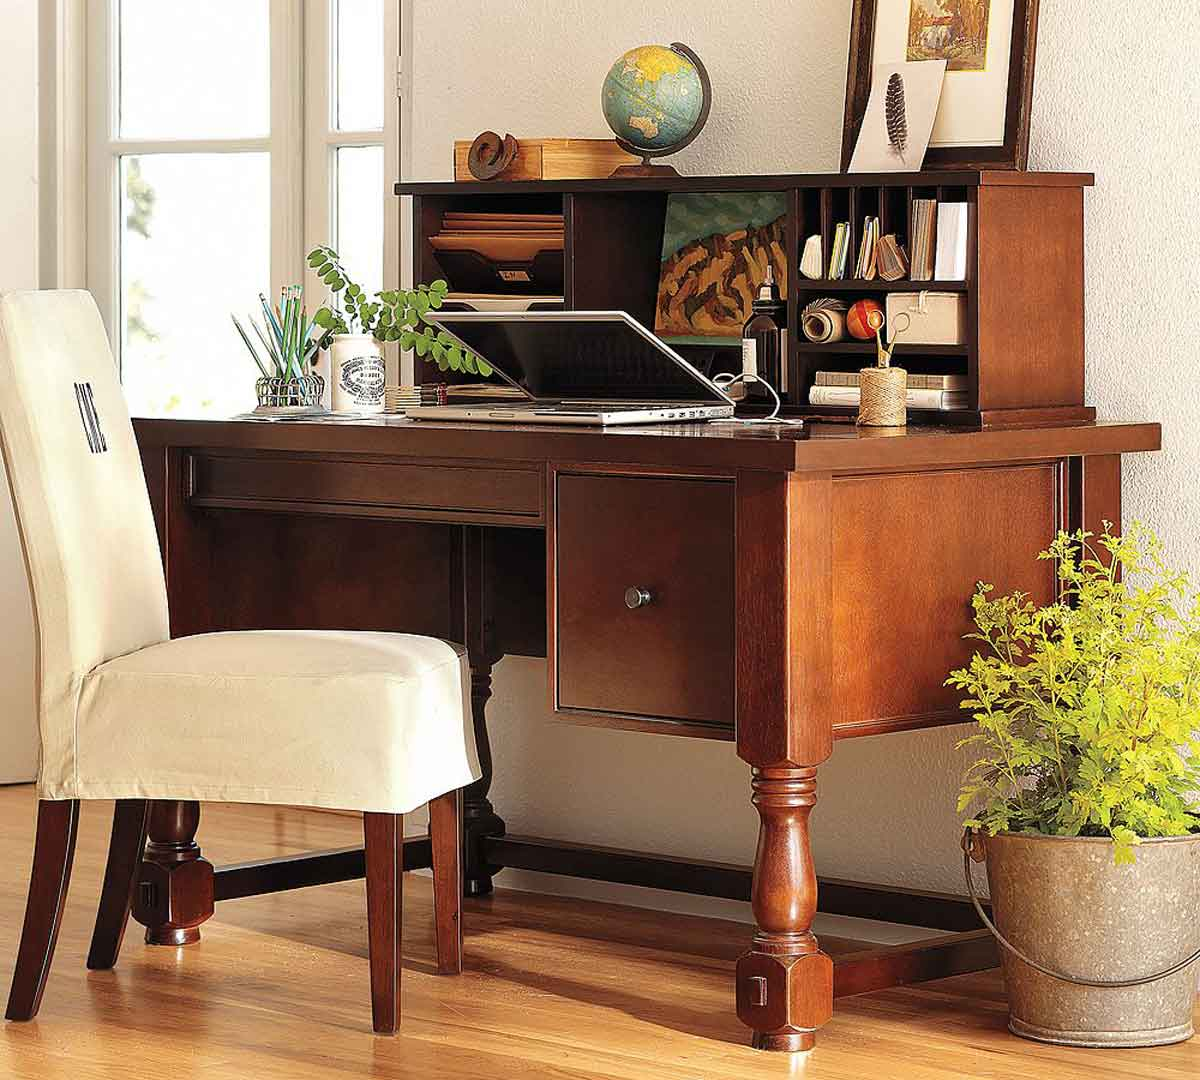 Home office design ideas - Home office designs ideas ...